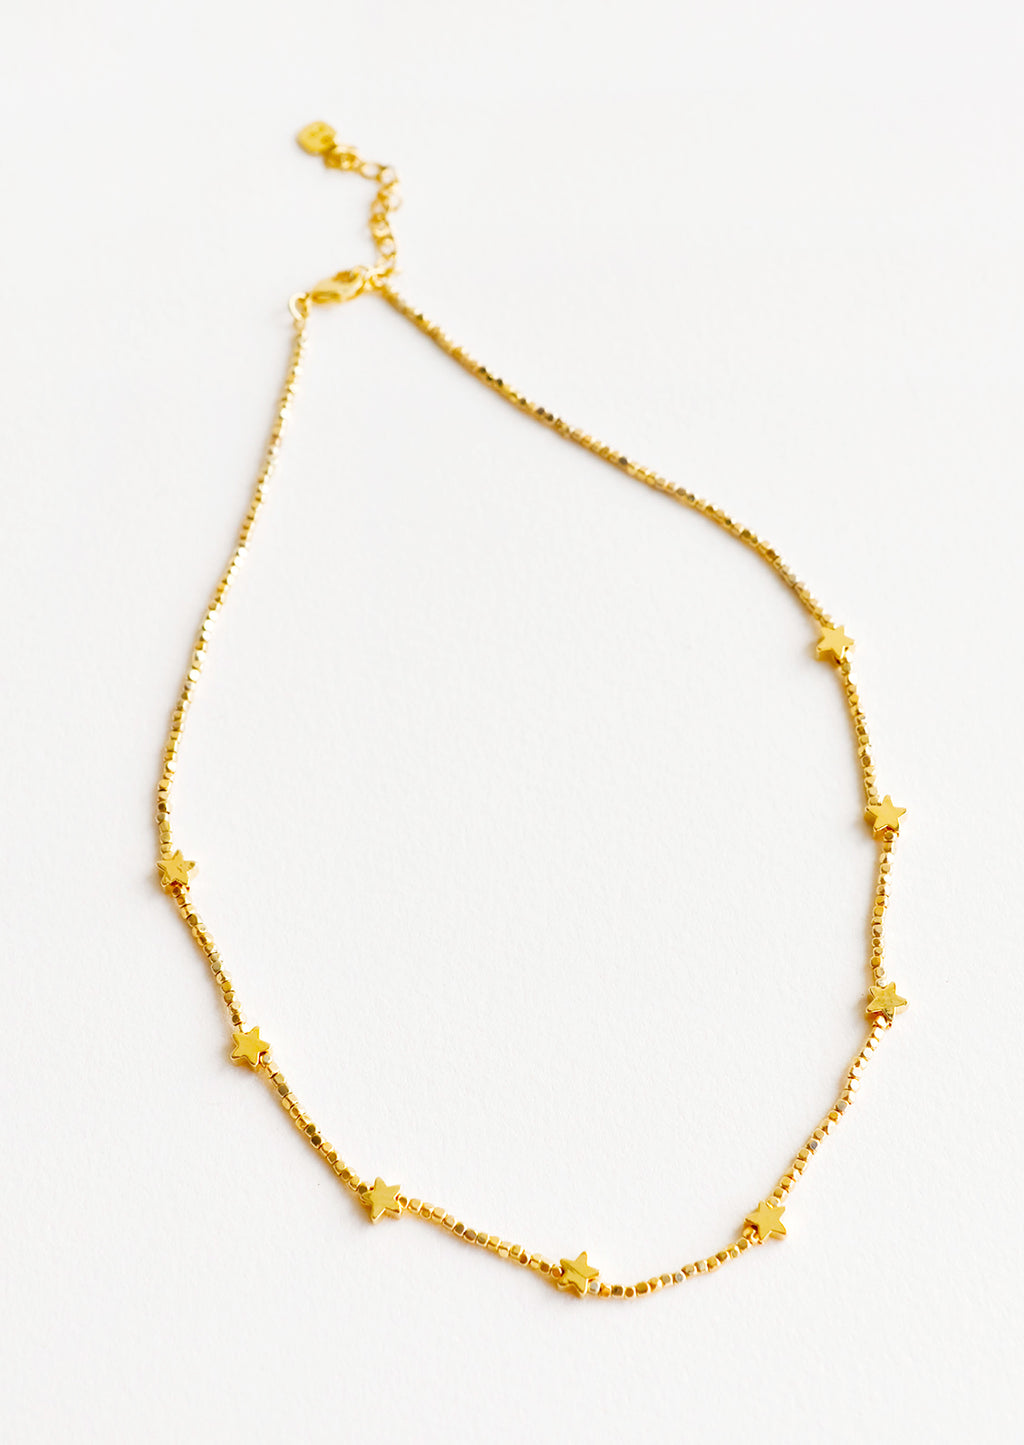 1: Short necklace featuring round yellow gold beads interspersed with gold star beads and an adjustable closure.